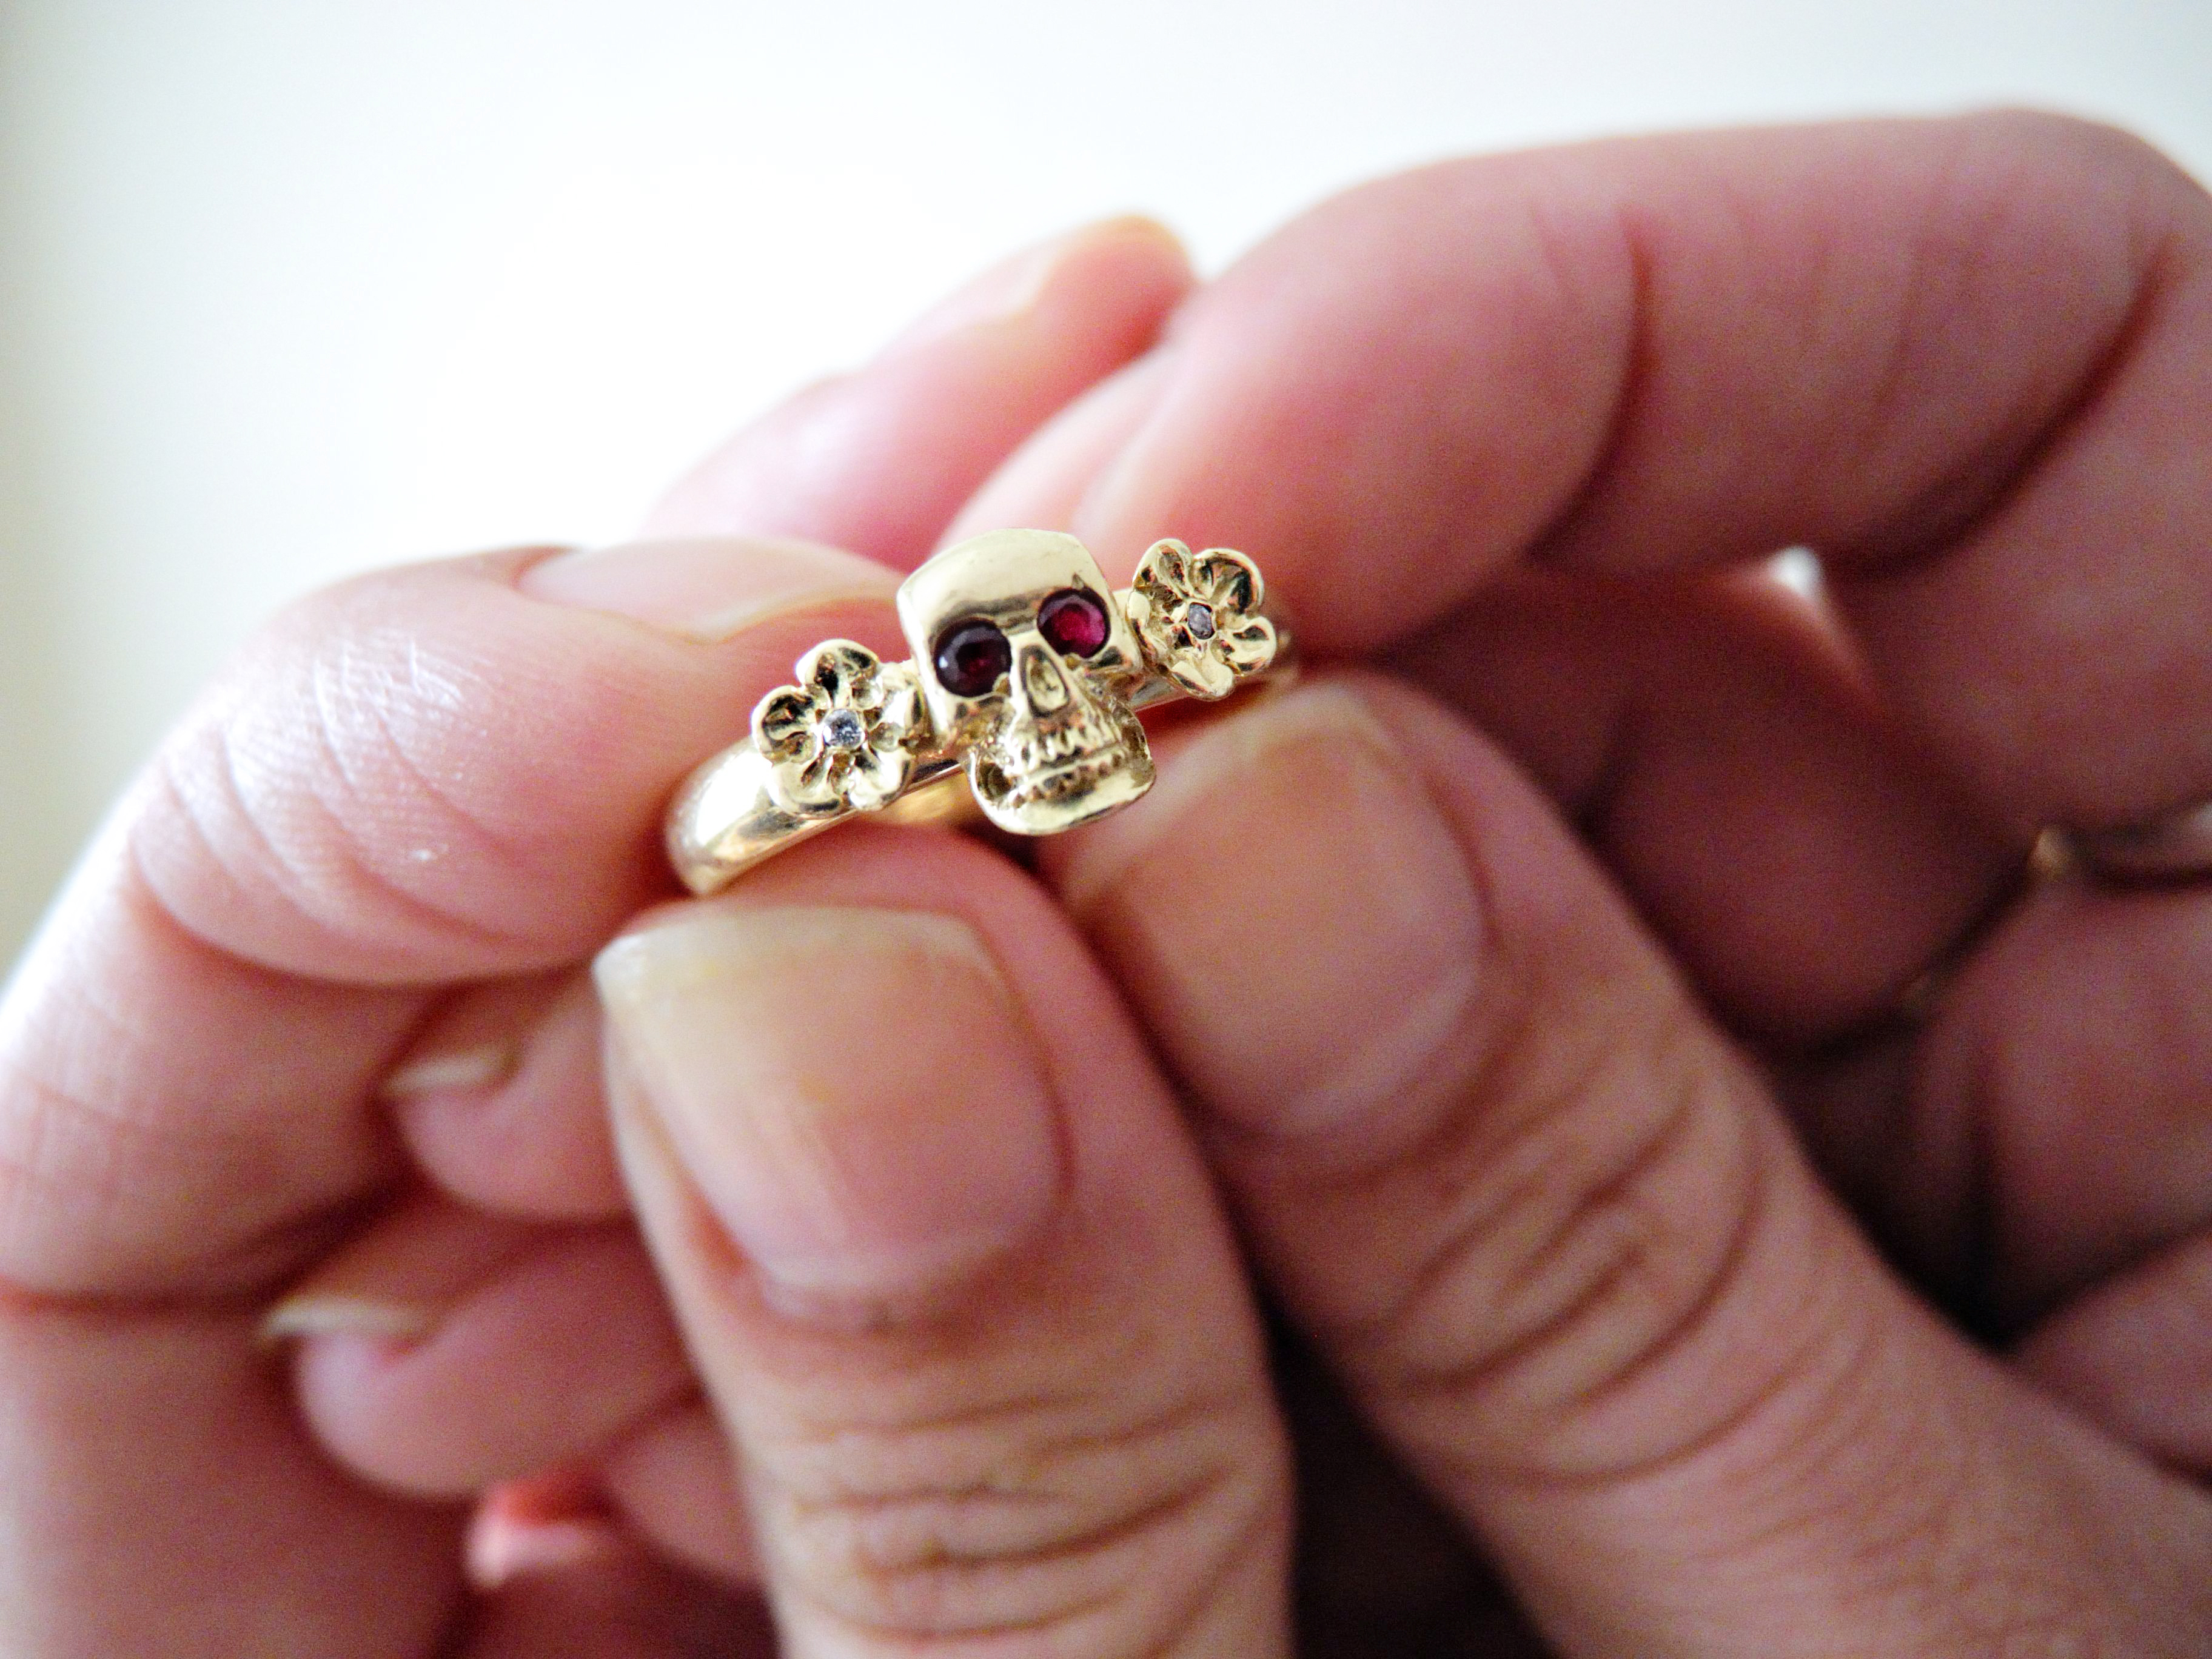 gold skull ruby wedding ring1 2 skull wedding ring gold skull ruby wedding ring1